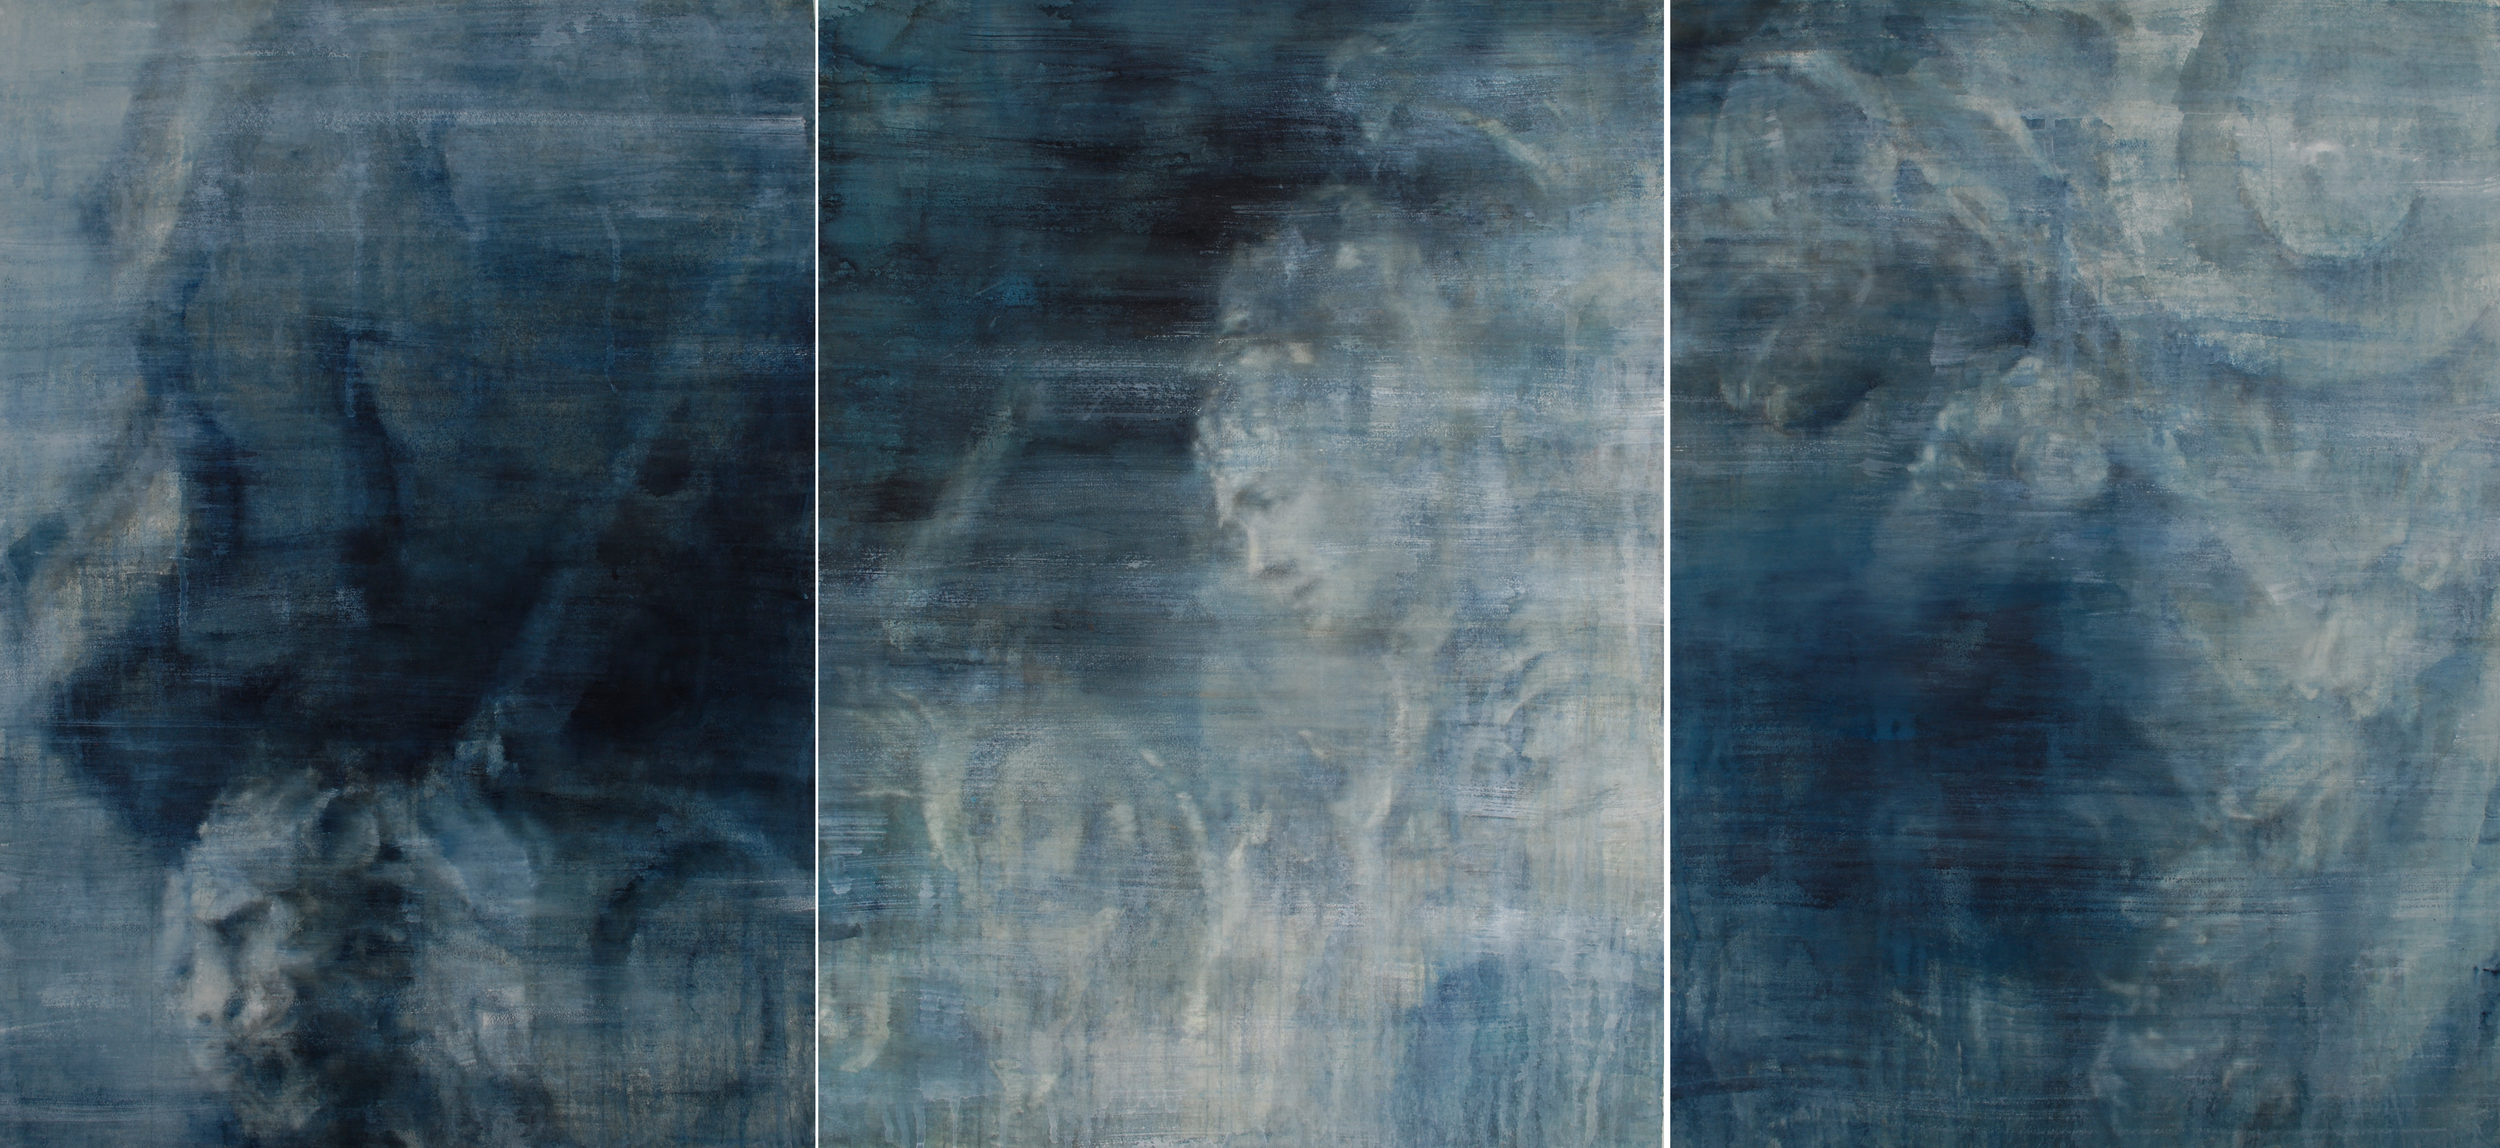 Gazing, triptych, 41x90 inches